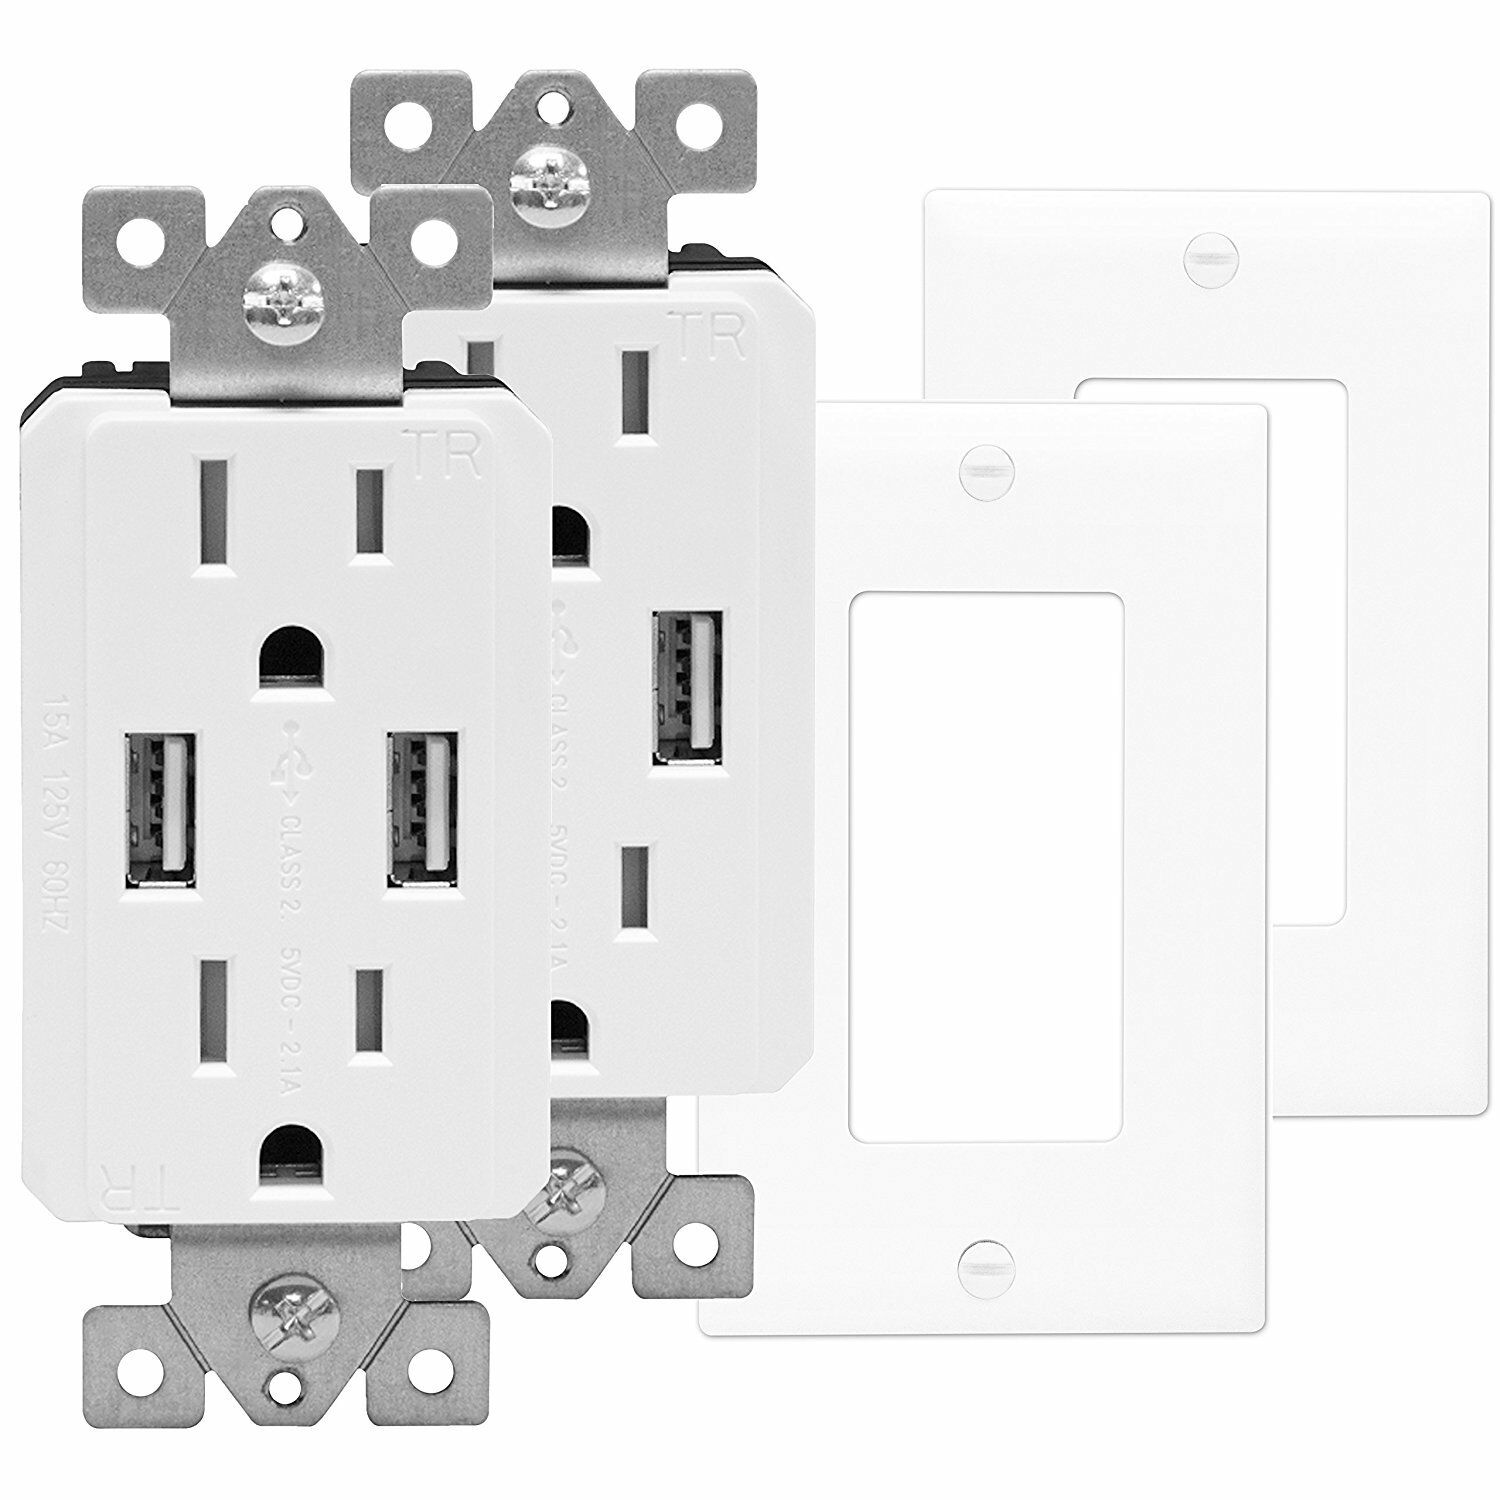 Blank Switch Plate Unique Brushed Stainless Steel Blank Outlet Cover Switch Wall Plates 1 2 Design Decoration